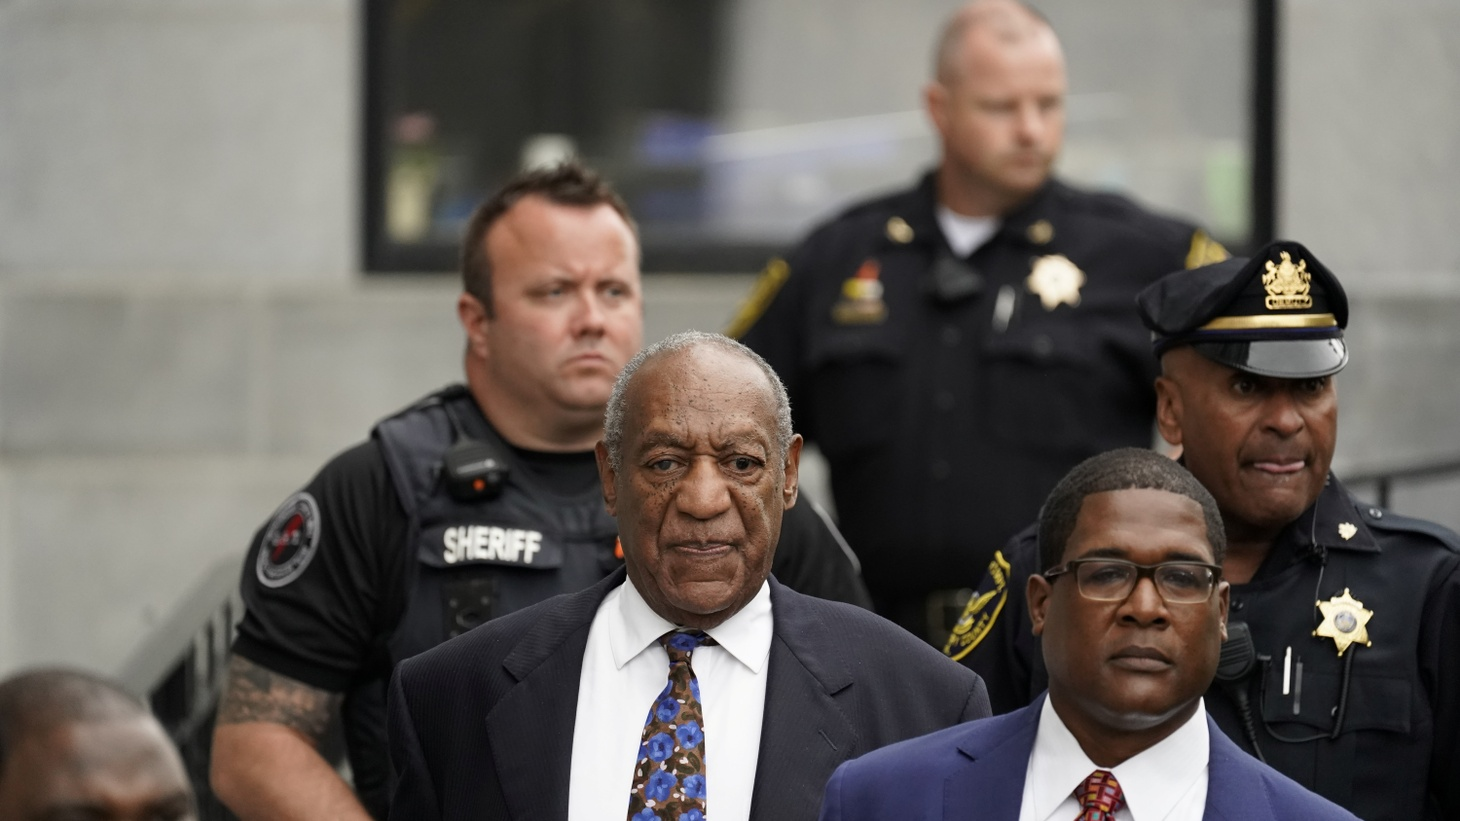 Actor and comedian Bill Cosby leaves the Montgomery County Courthouse after his first day of sentencing hearings in his sexual assault trial in Norristown, Pennsylvania, U.S., September 24, 2018.